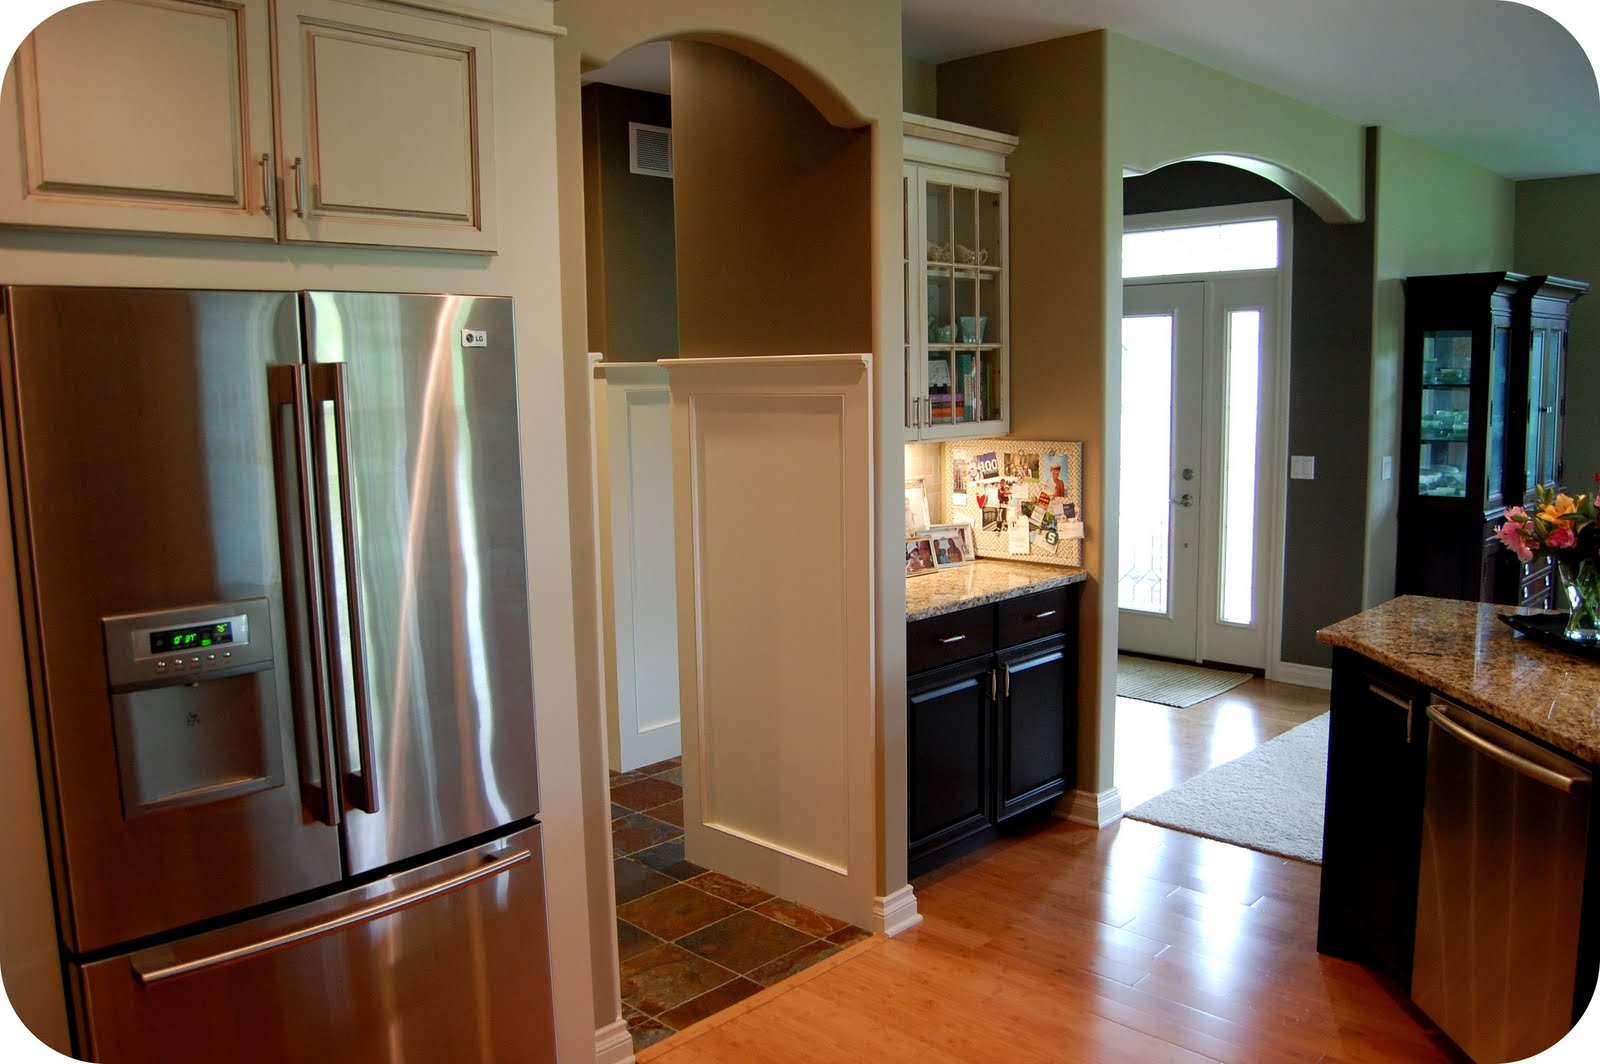 Benjamin Moore Kitchen Cabinet Colors 33 Shades Of Green Home Tour Kitchen